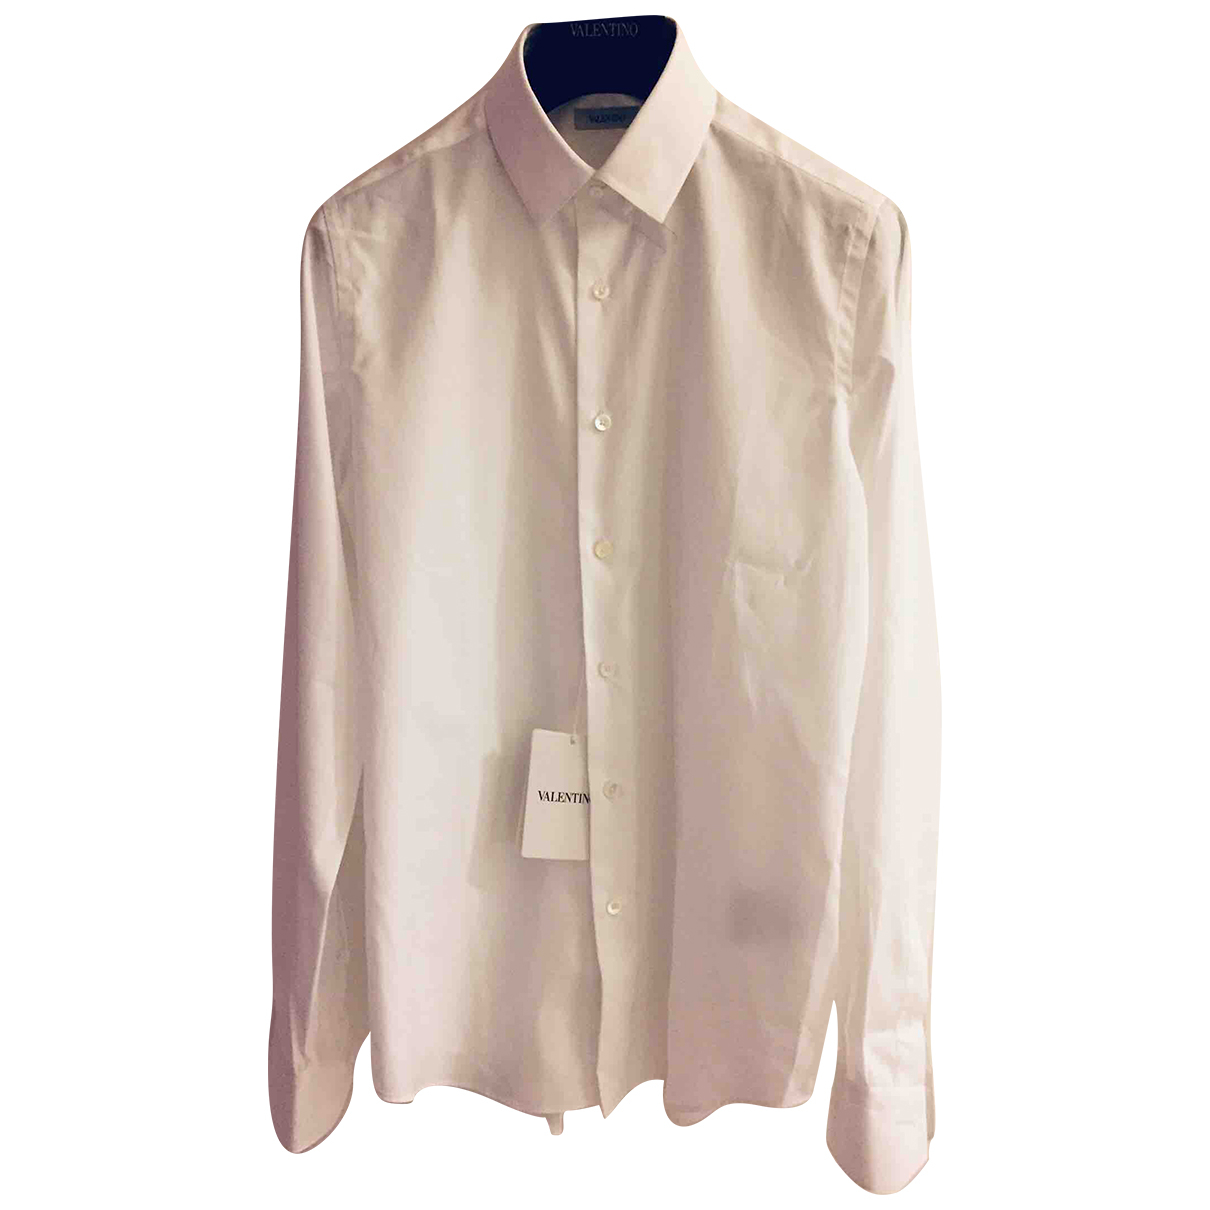 Valentino Garavani \N White Cotton Shirts for Men 39 EU (tour de cou / collar)